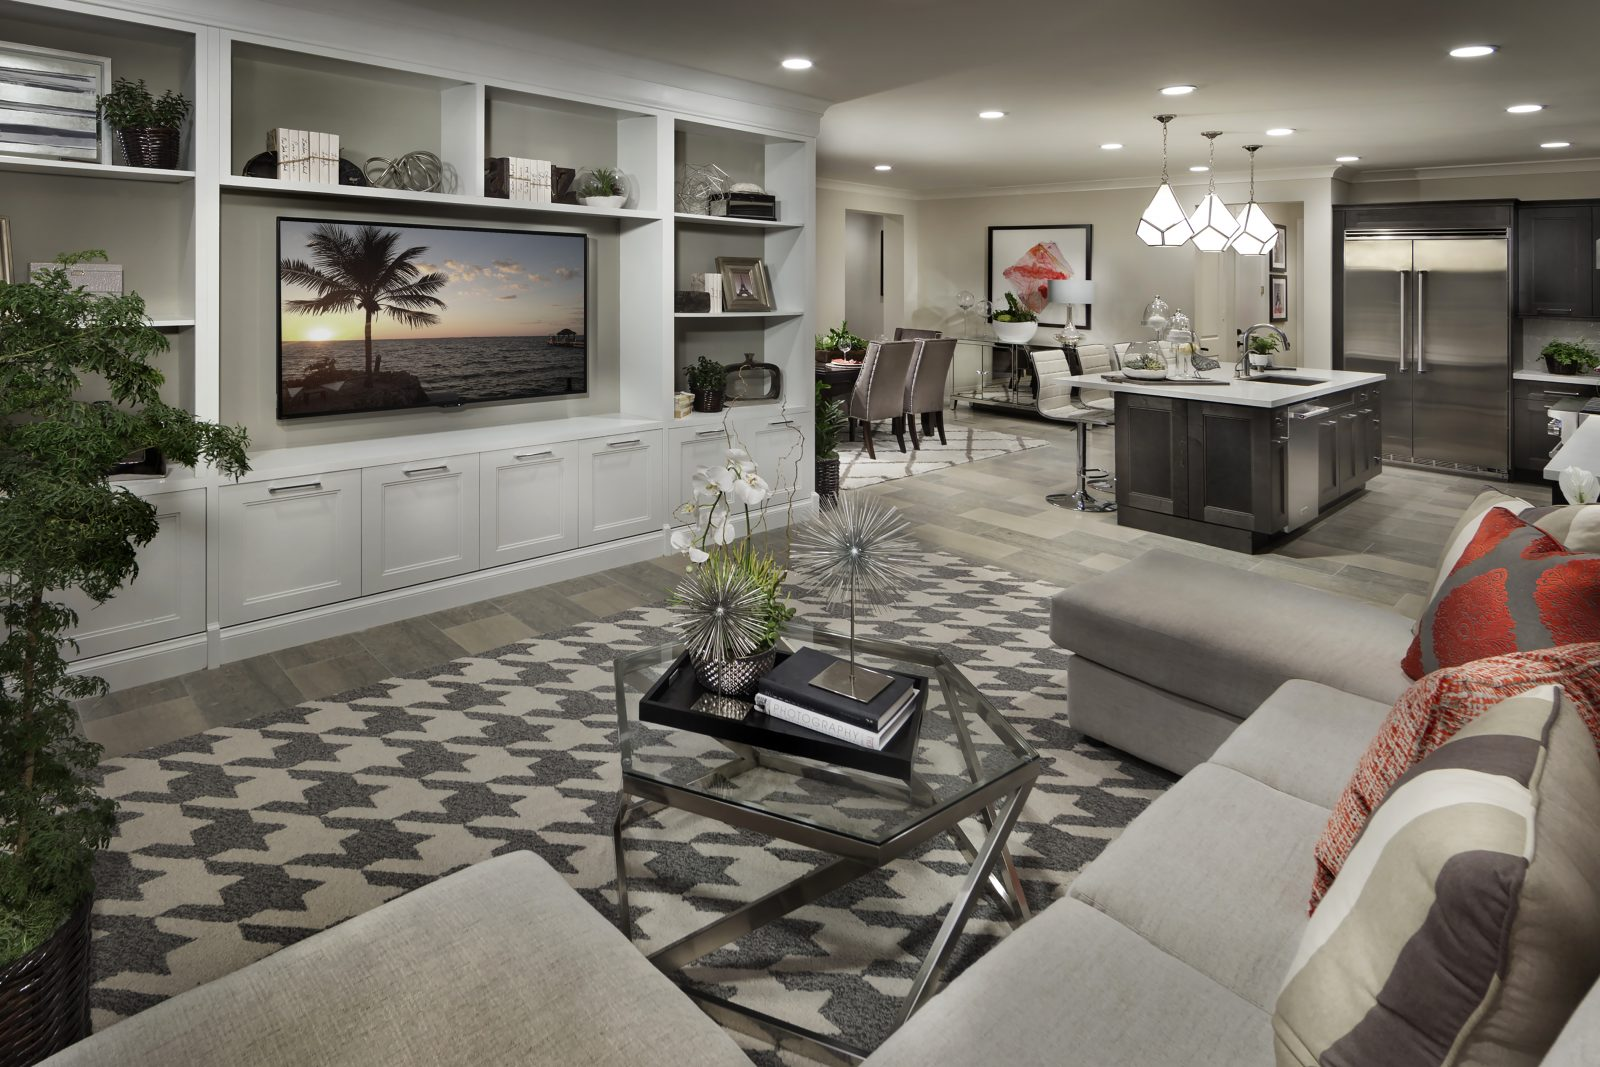 Living Room and Kitchen | Legado at Portola Springs in Irvine, CA | Brookfield Residential